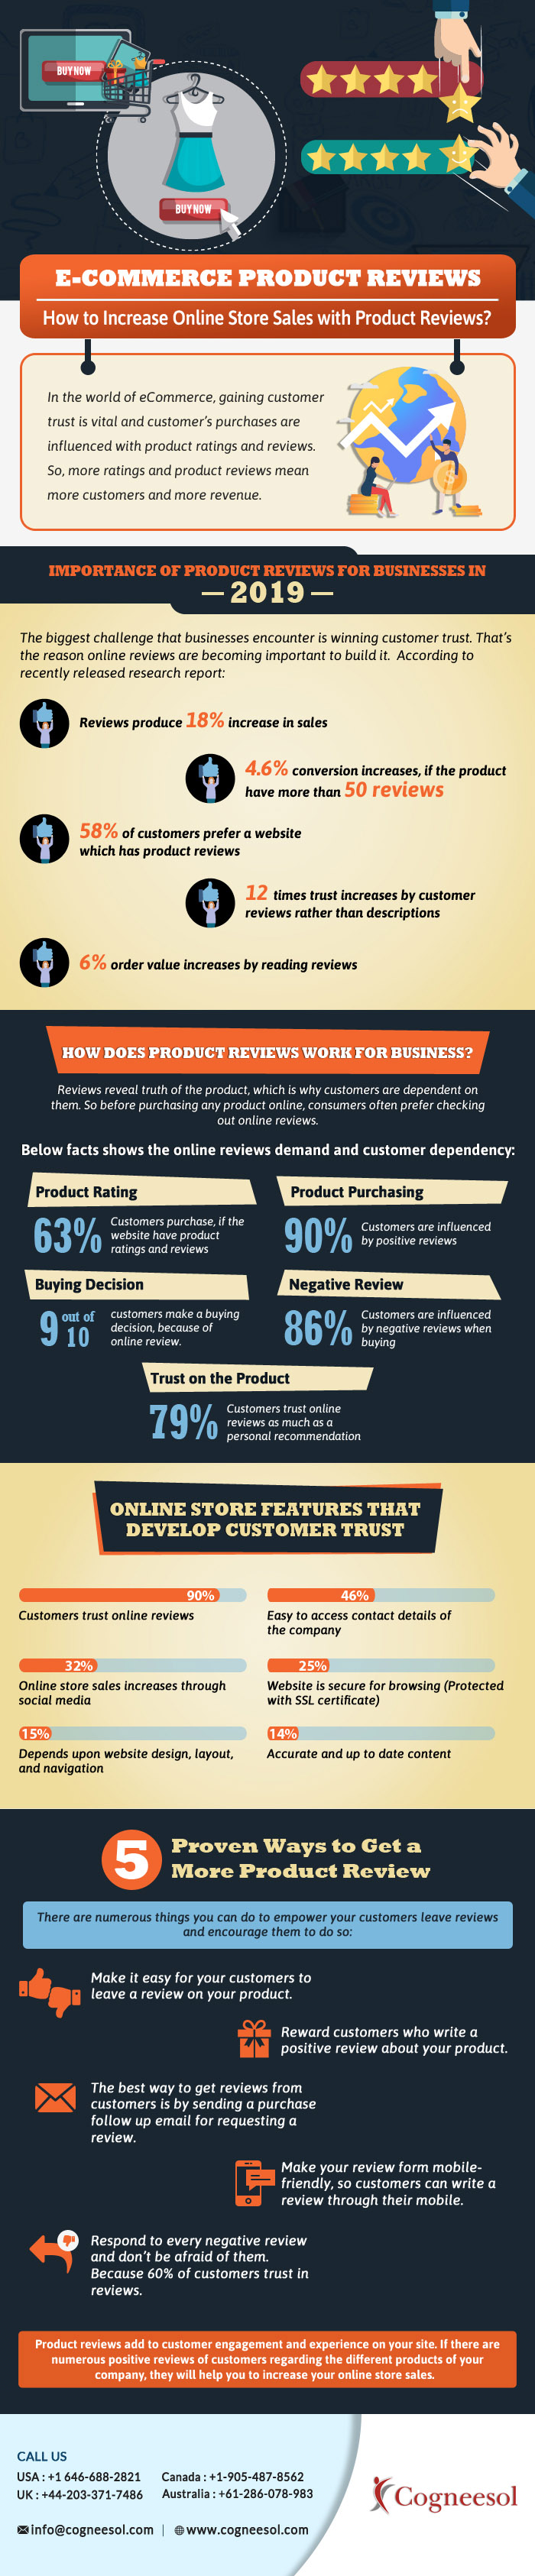 E-commerce Product Reviews How to Increase Online Store Sales with Product Reviews